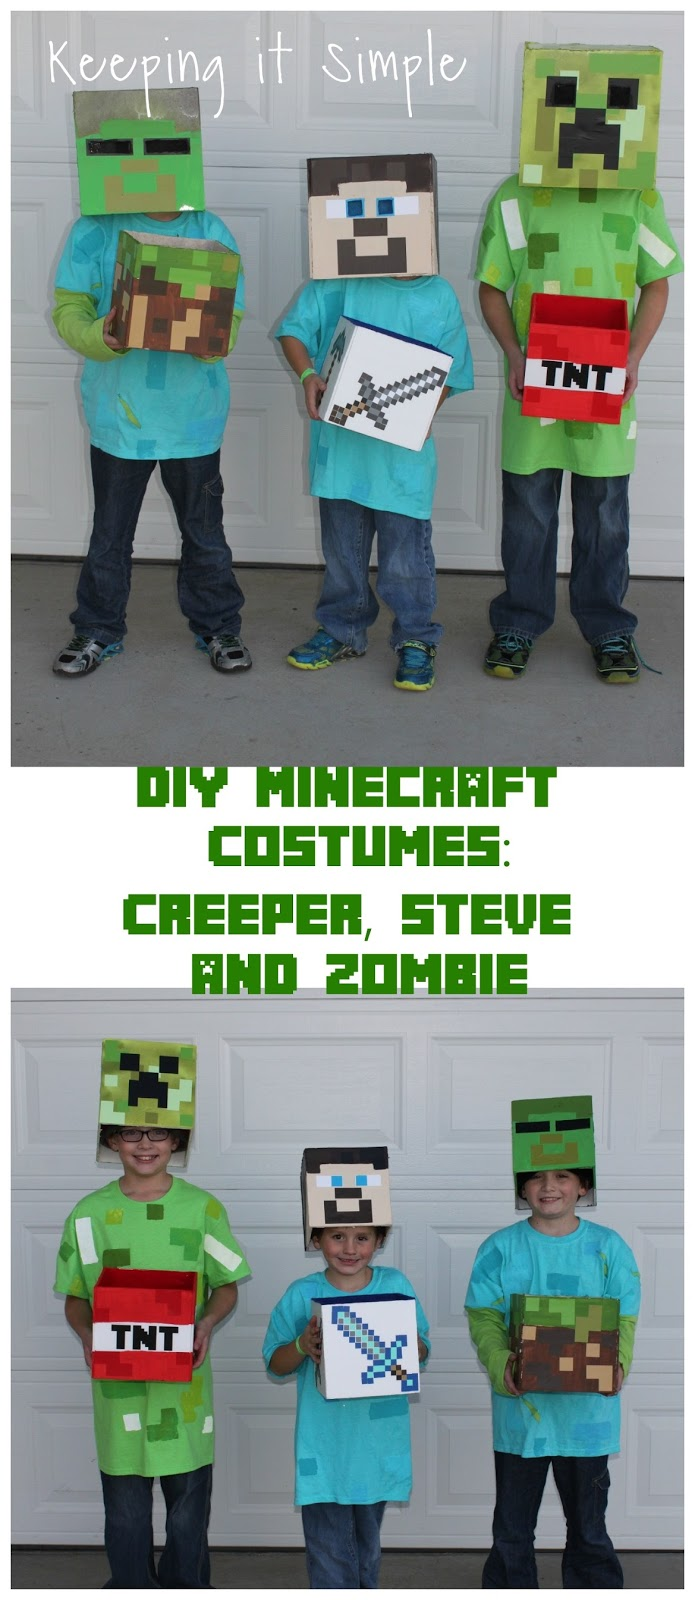 Diy minecraft costumes creeper steve and zombie costume keeping i ended up making them a mask a hat and a treat box since they always seem to want a prop i figured they might as well have a functional prop solutioingenieria Image collections